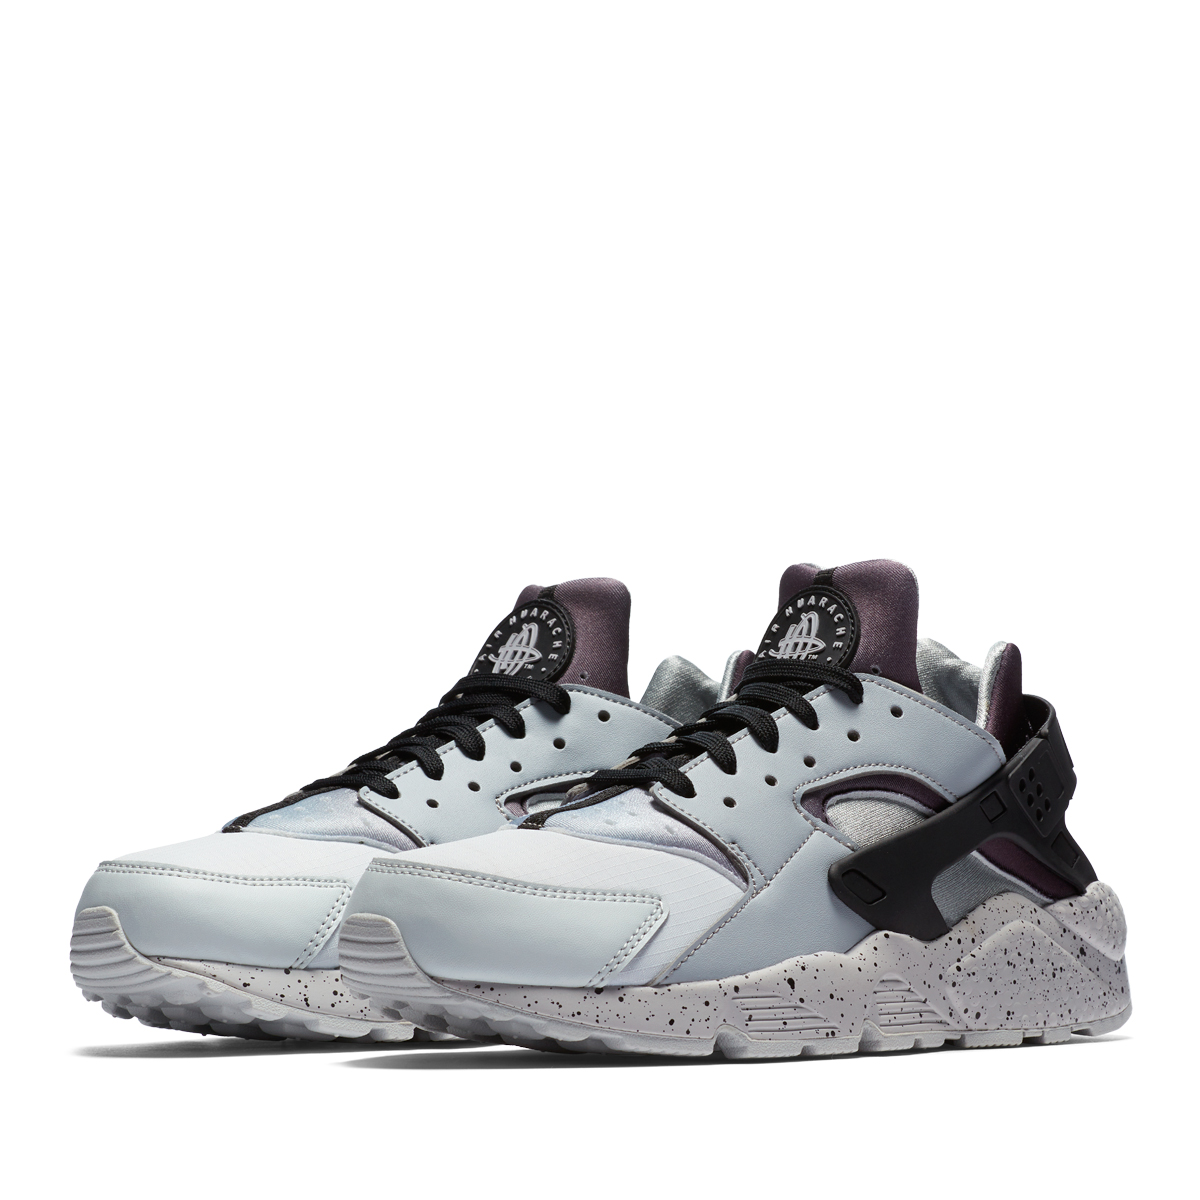 RUNNING NIKE AIR HUARACHE Wolf Grey Pure Platinum Black White